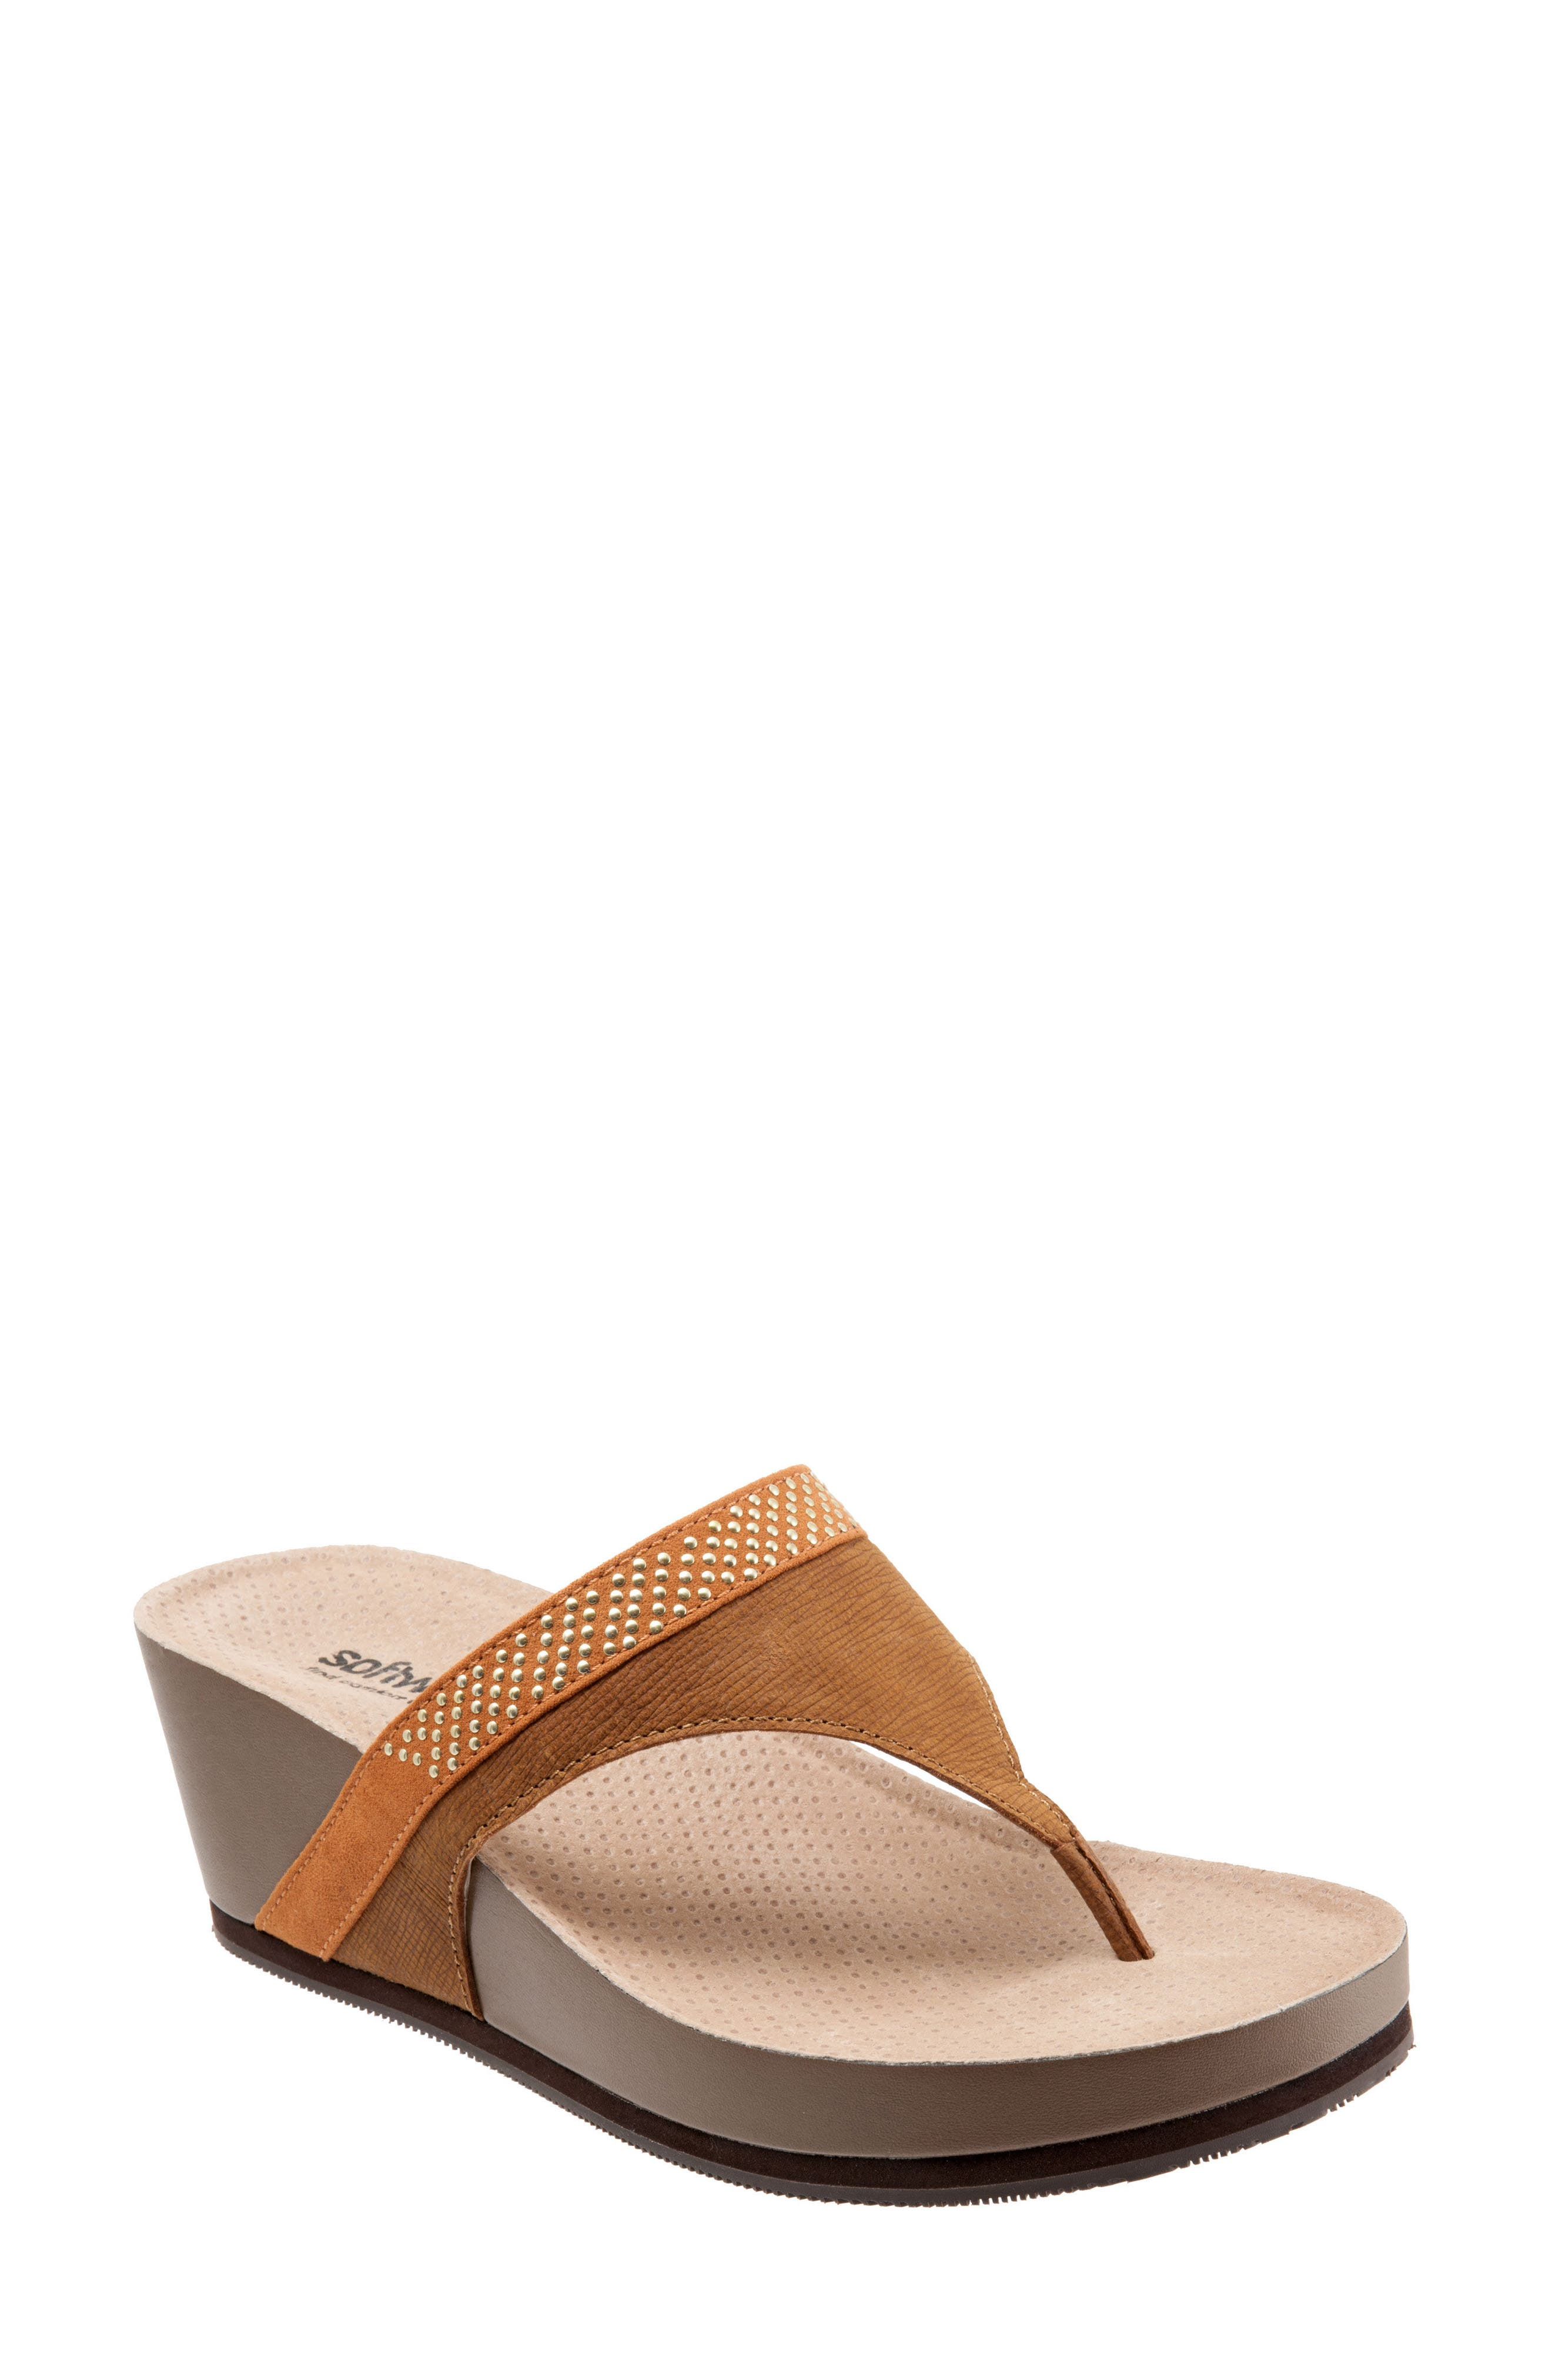 SoftWalk® Heights Wedge Slide Sandal (Women)